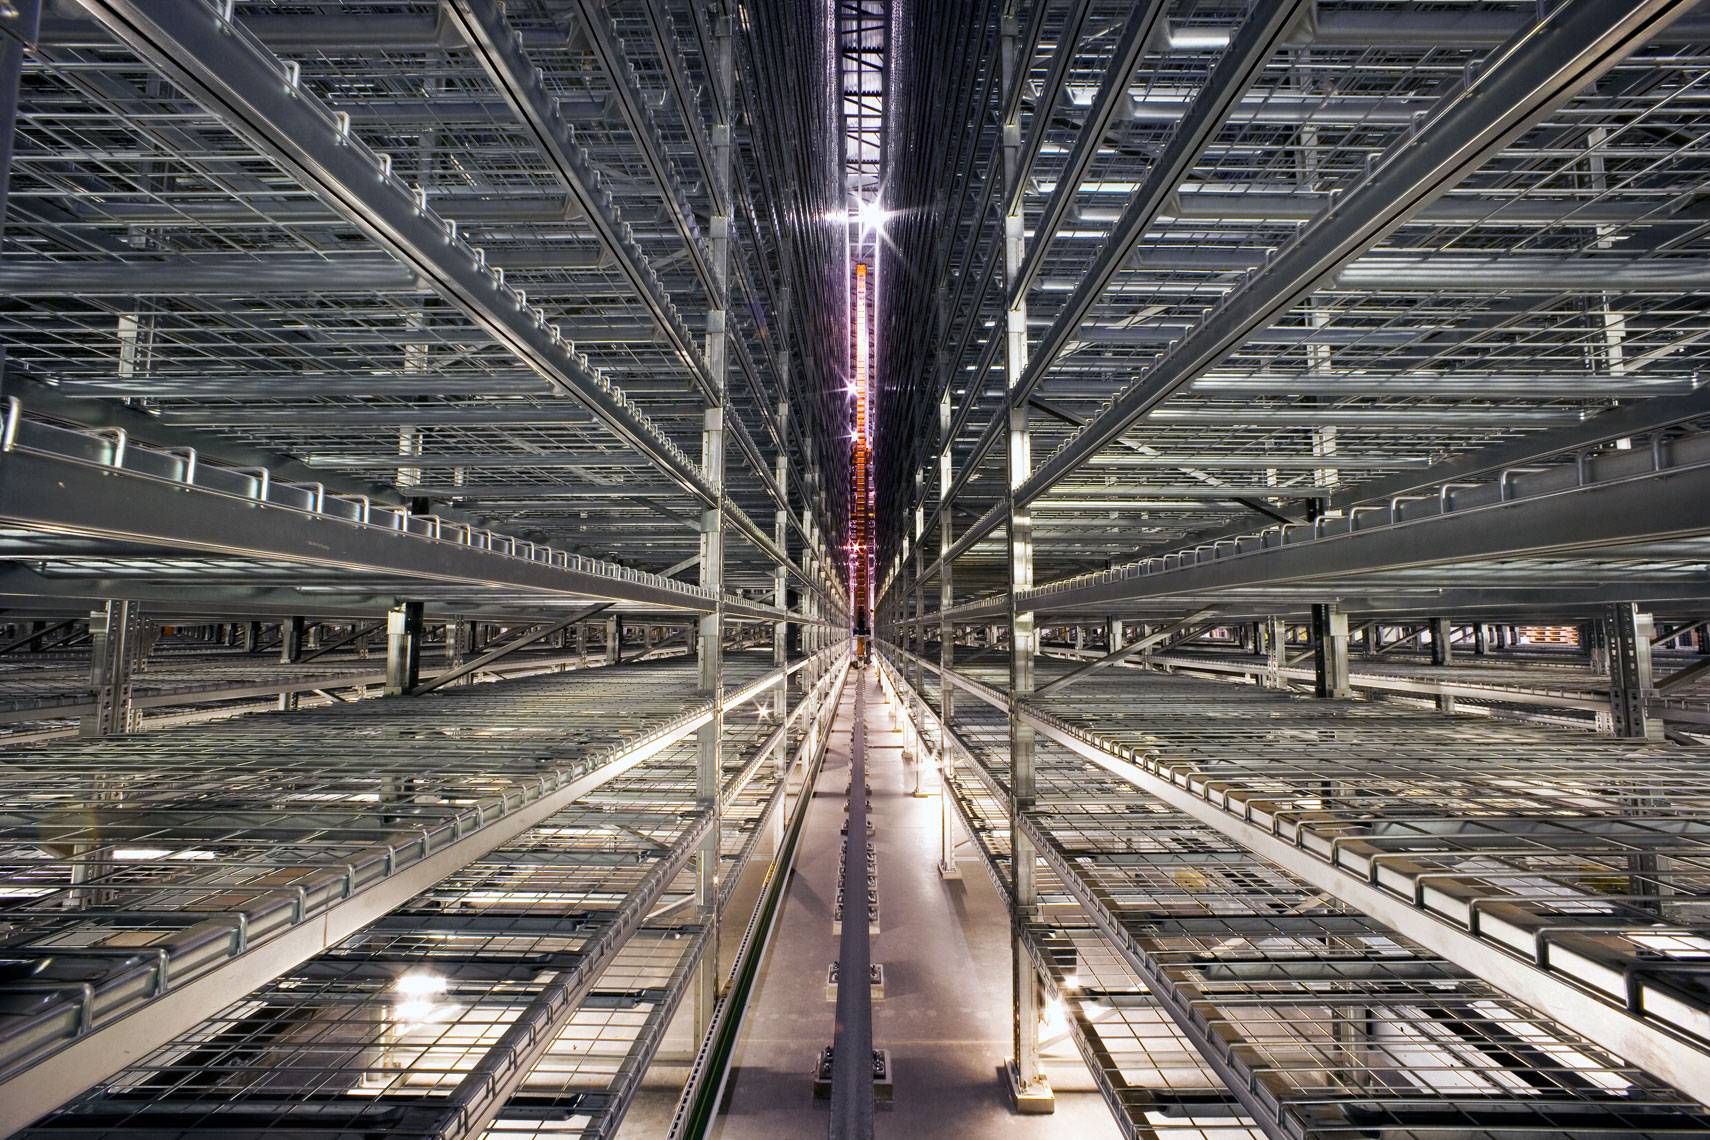 extensive rack system for automated storage system in distribution center